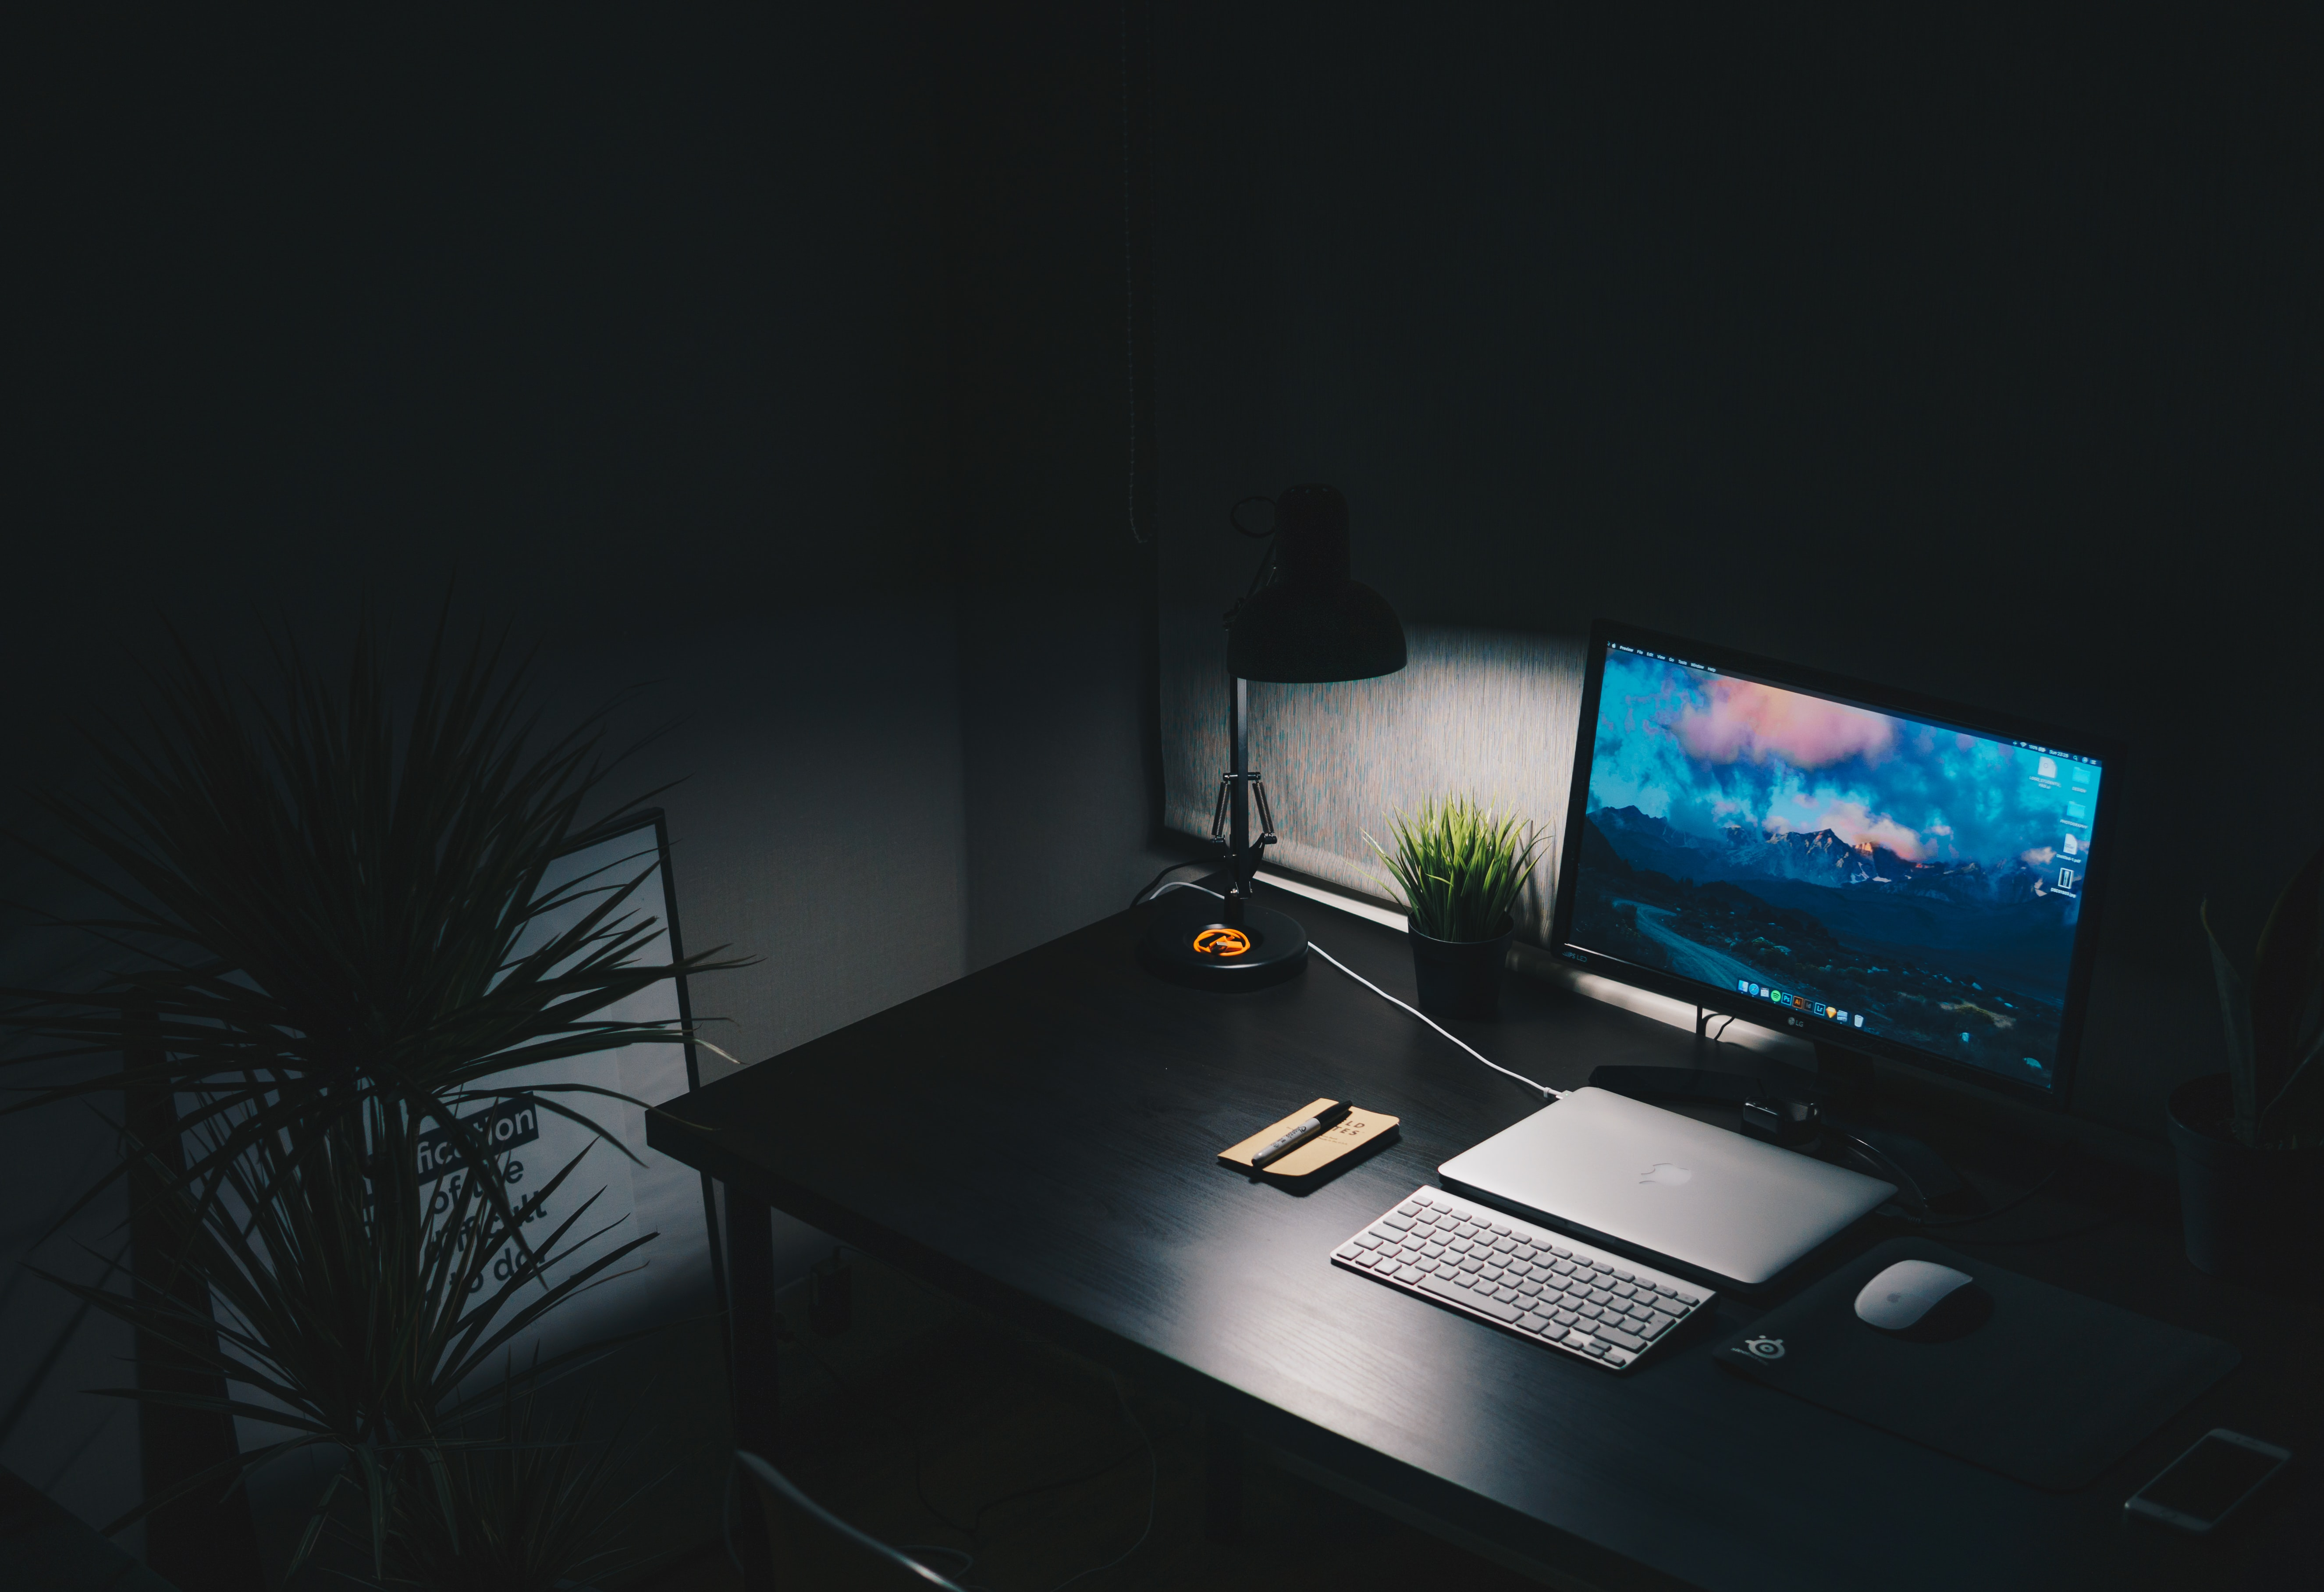 Computer Images Download Free On Unsplash Of A Diagram For Kids Personal Office Desk Laptop